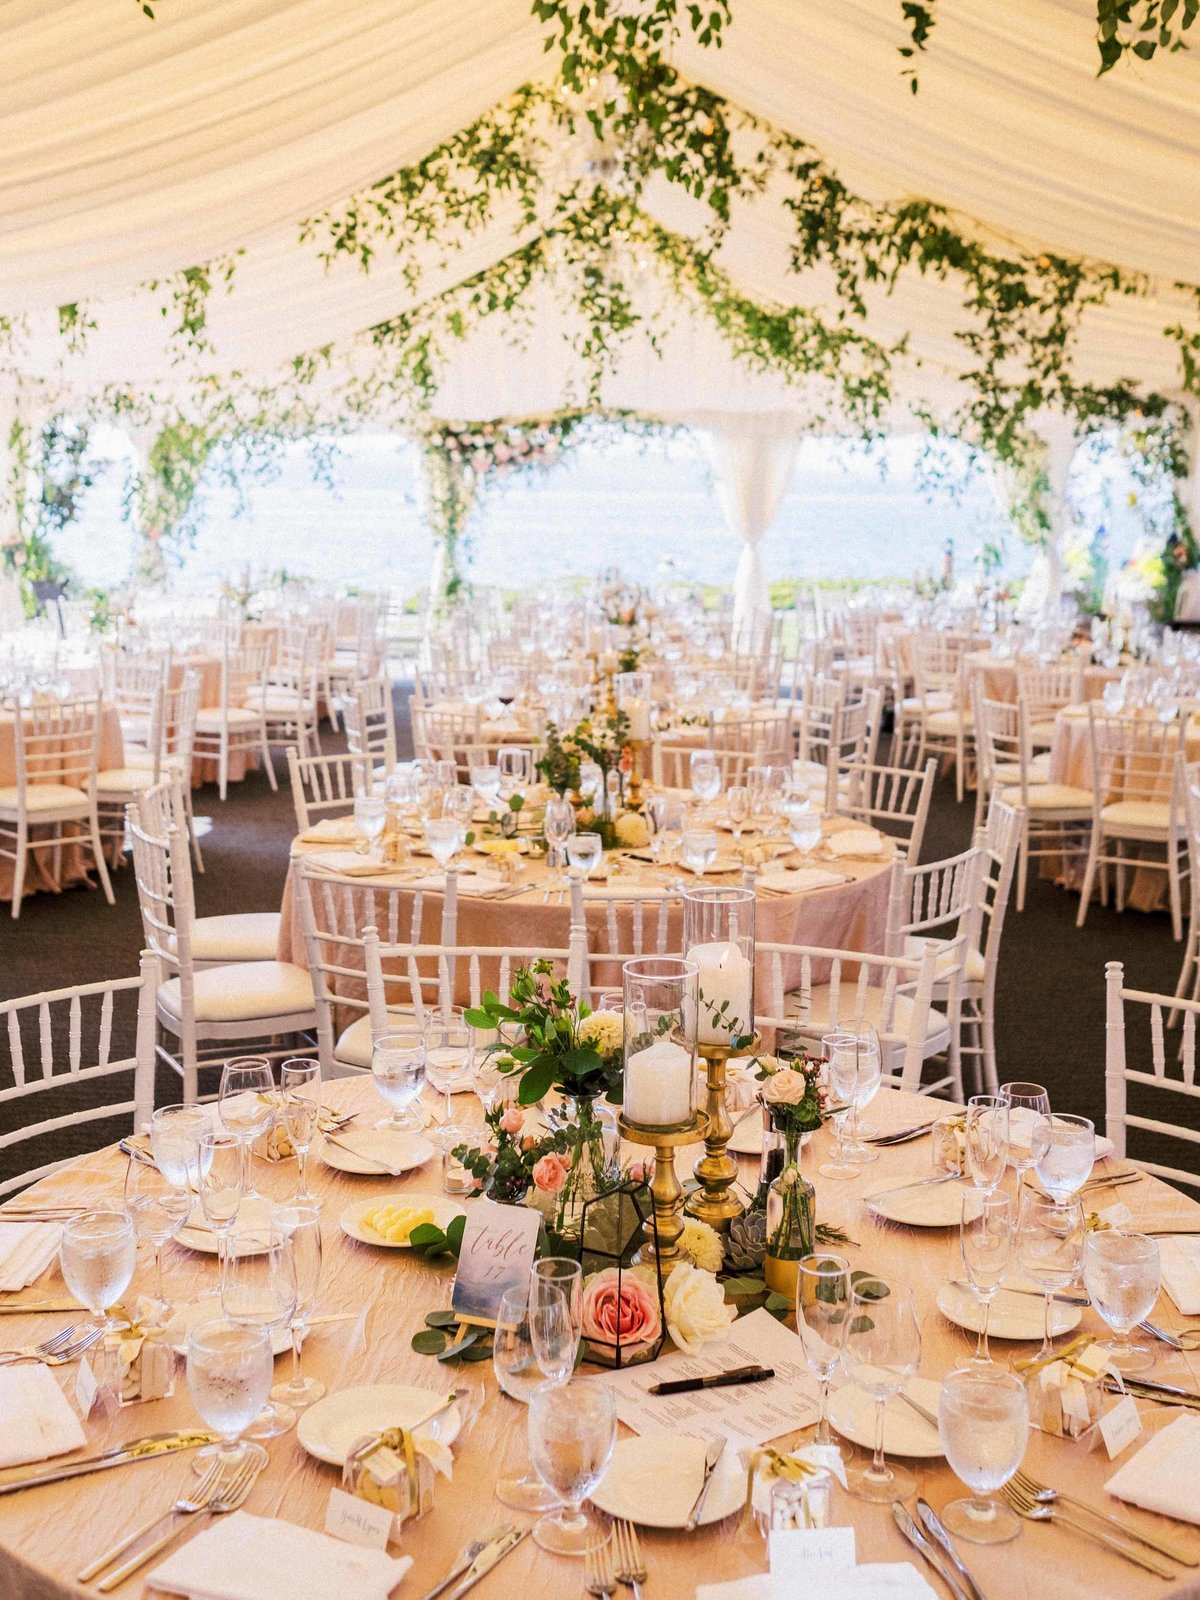 53greenery-summer-tent-wedding-flora-nova-design